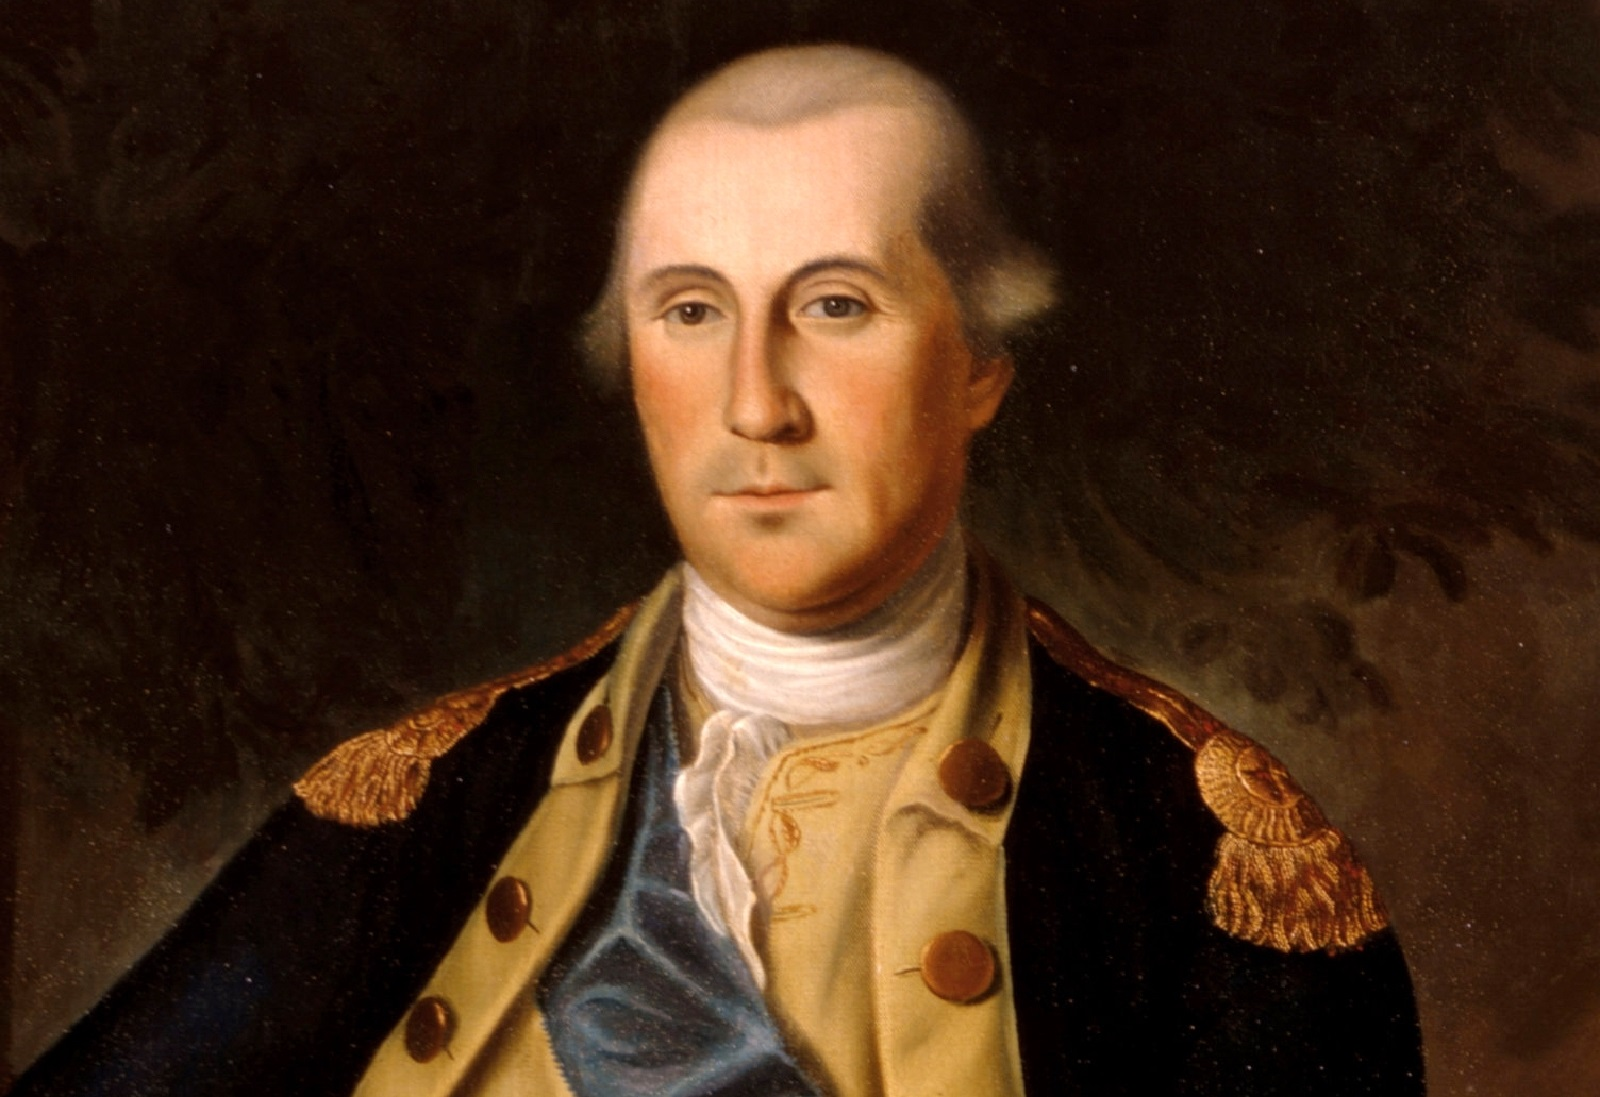 School Board Votes To Paint Over George Washington Mural